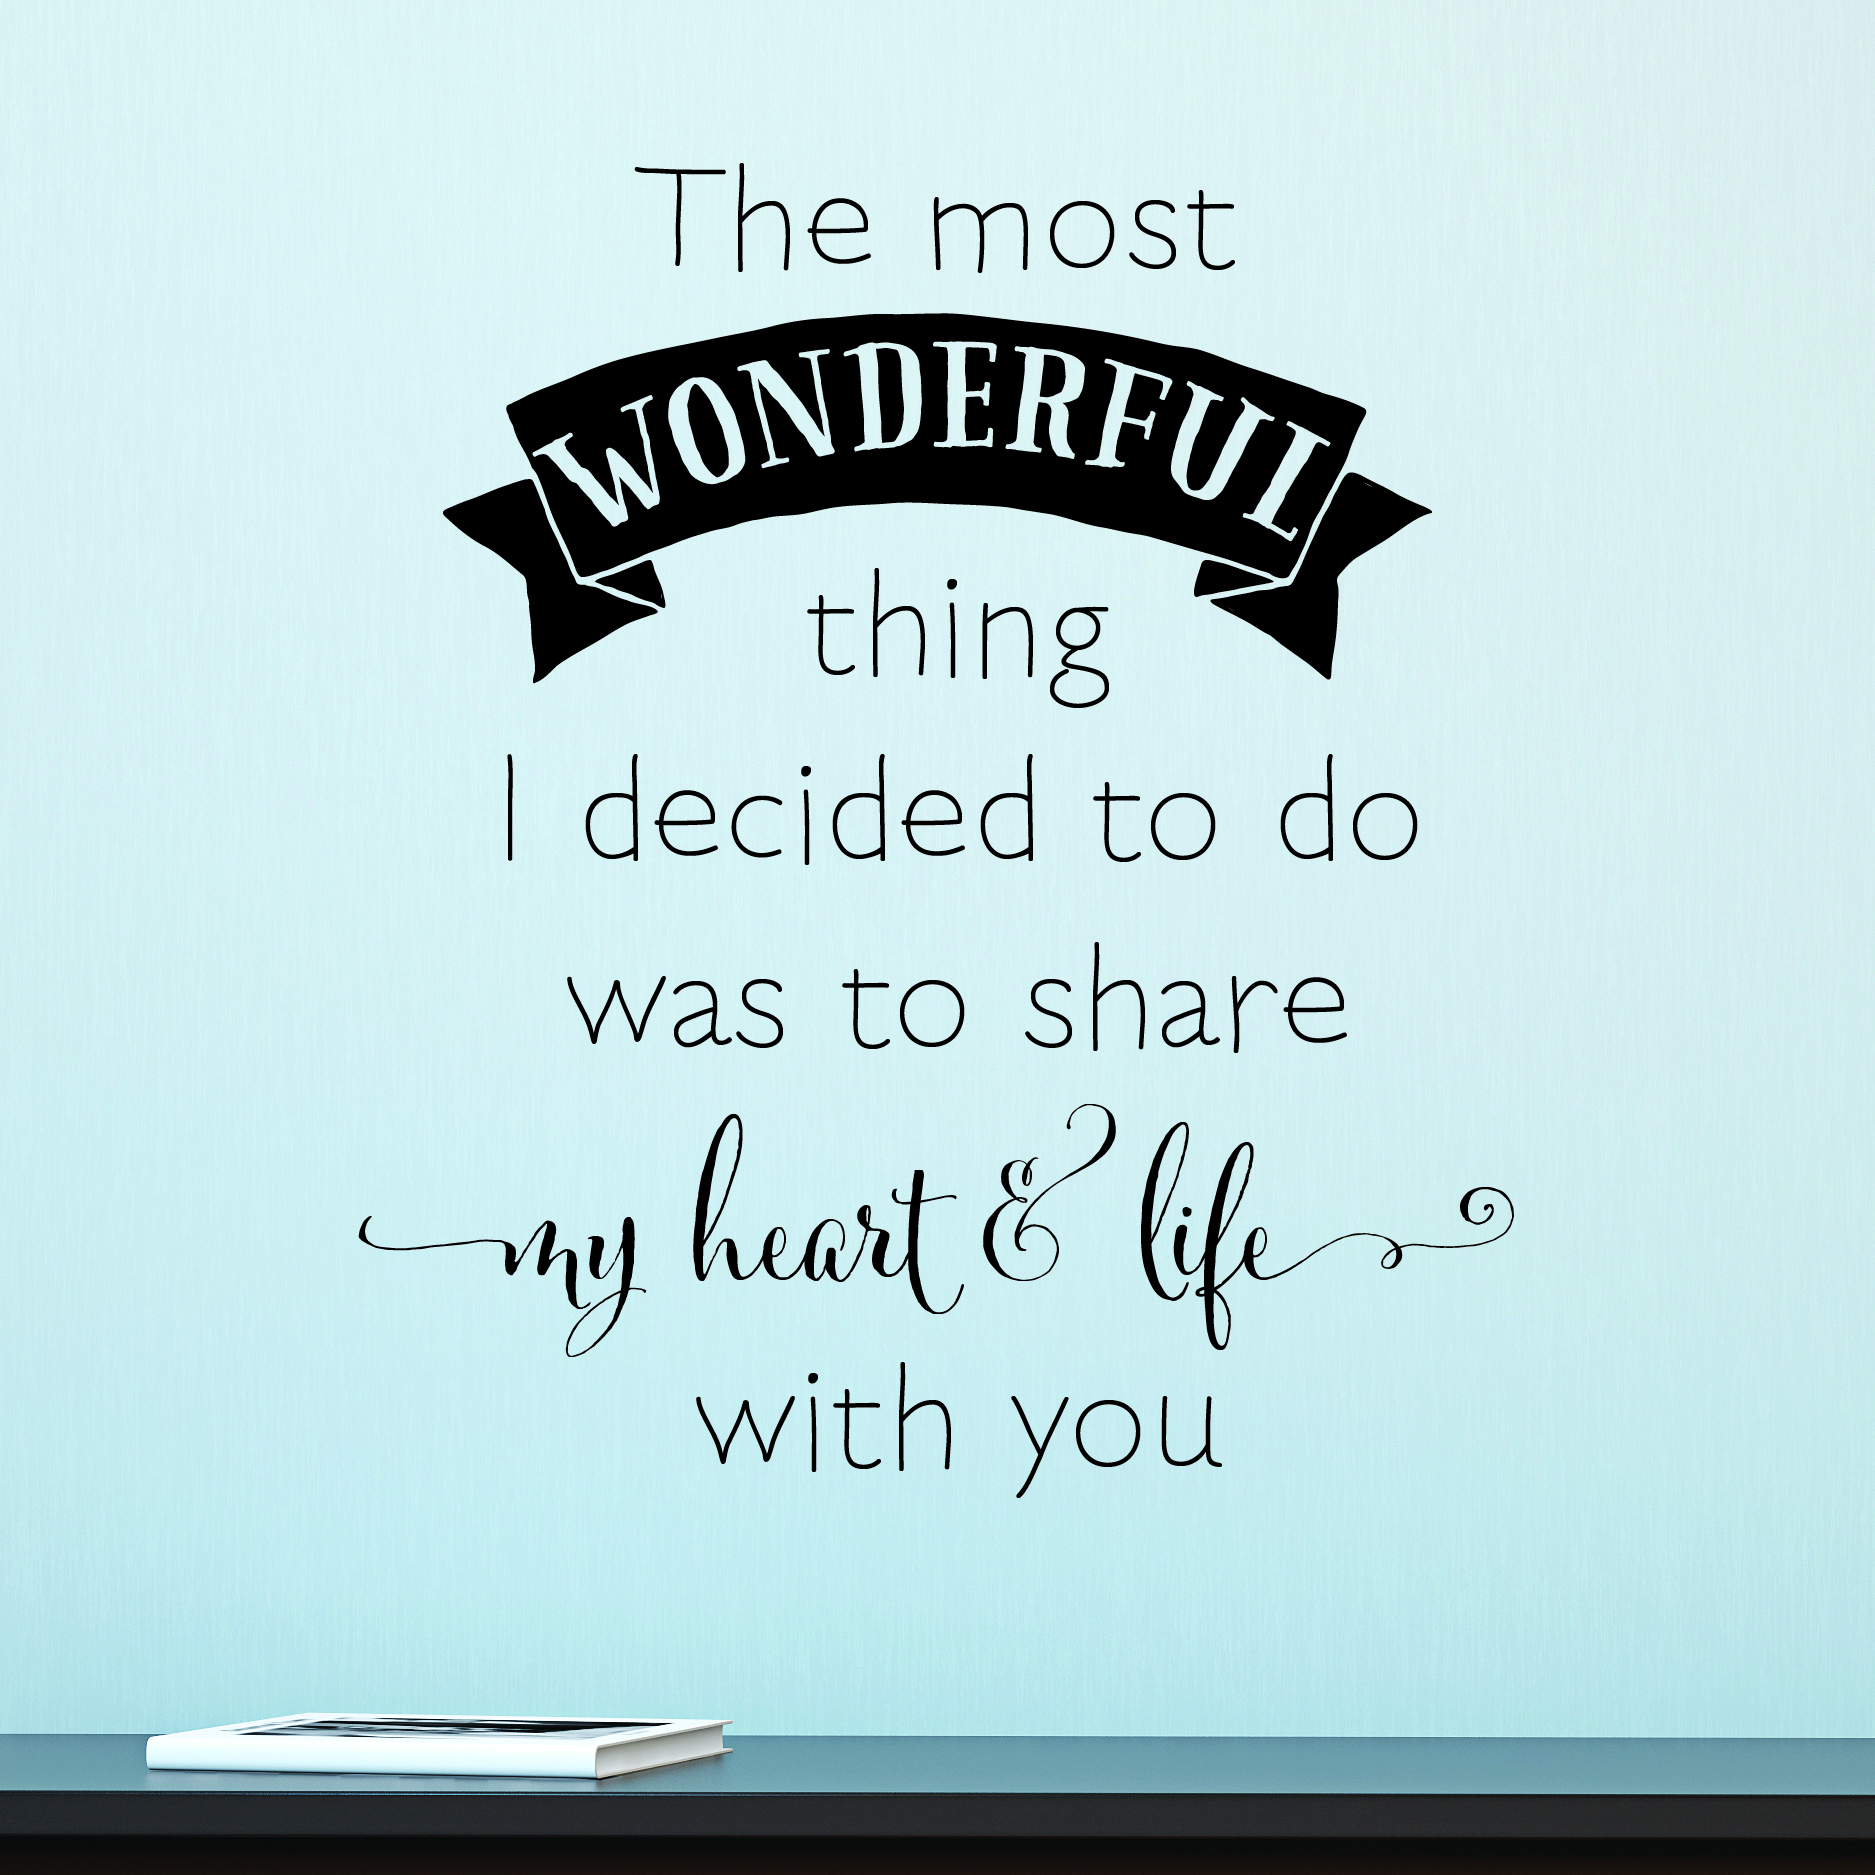 Share My Heart Life Wall Quotes Decal Wallquotescom